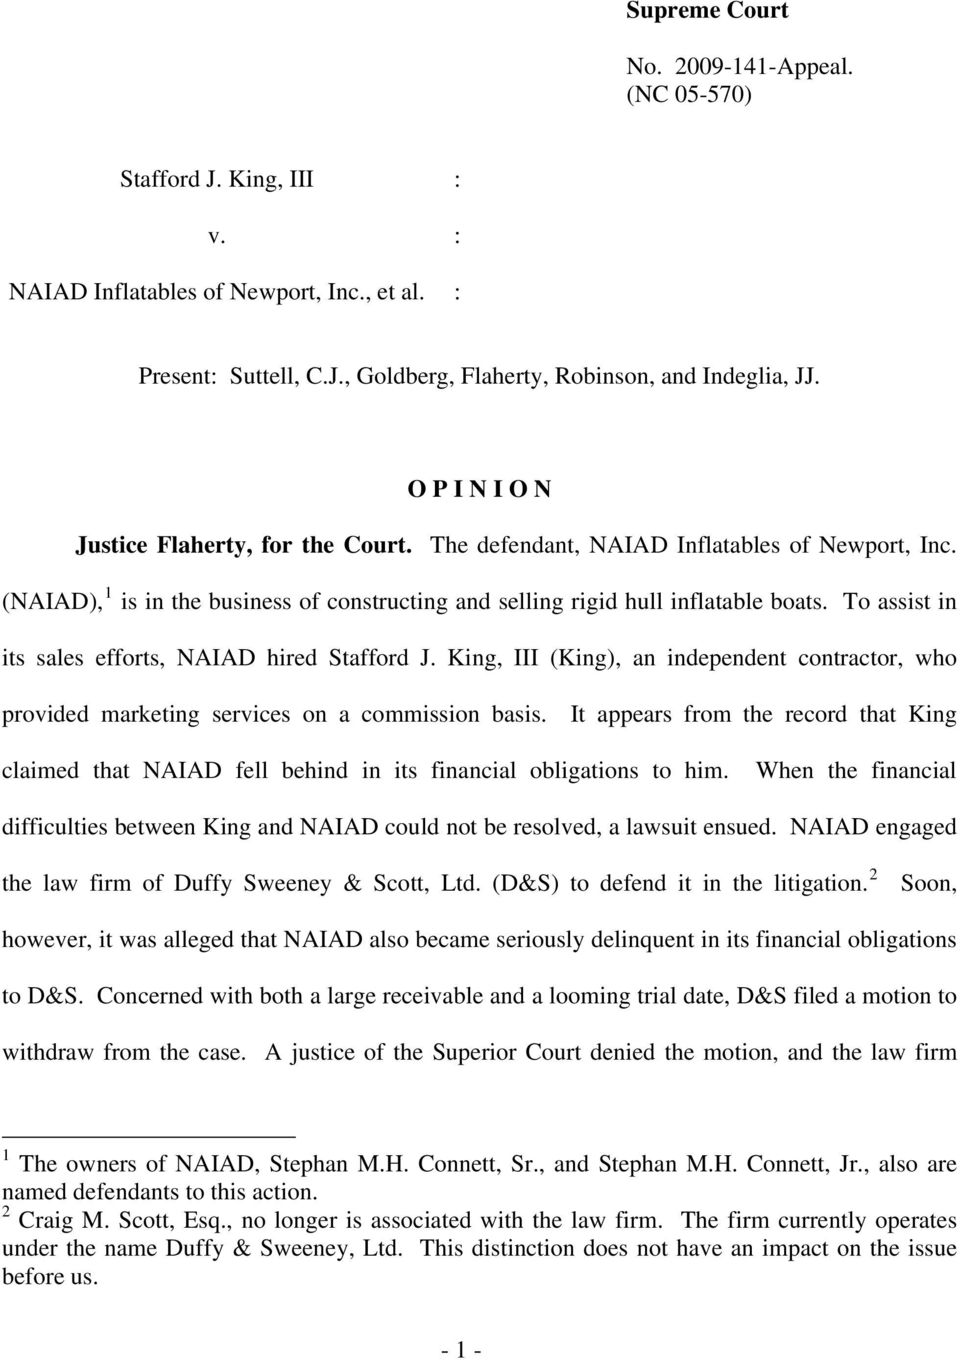 To assist in its sales efforts, NAIAD hired Stafford J. King, III (King), an independent contractor, who provided marketing services on a commission basis.